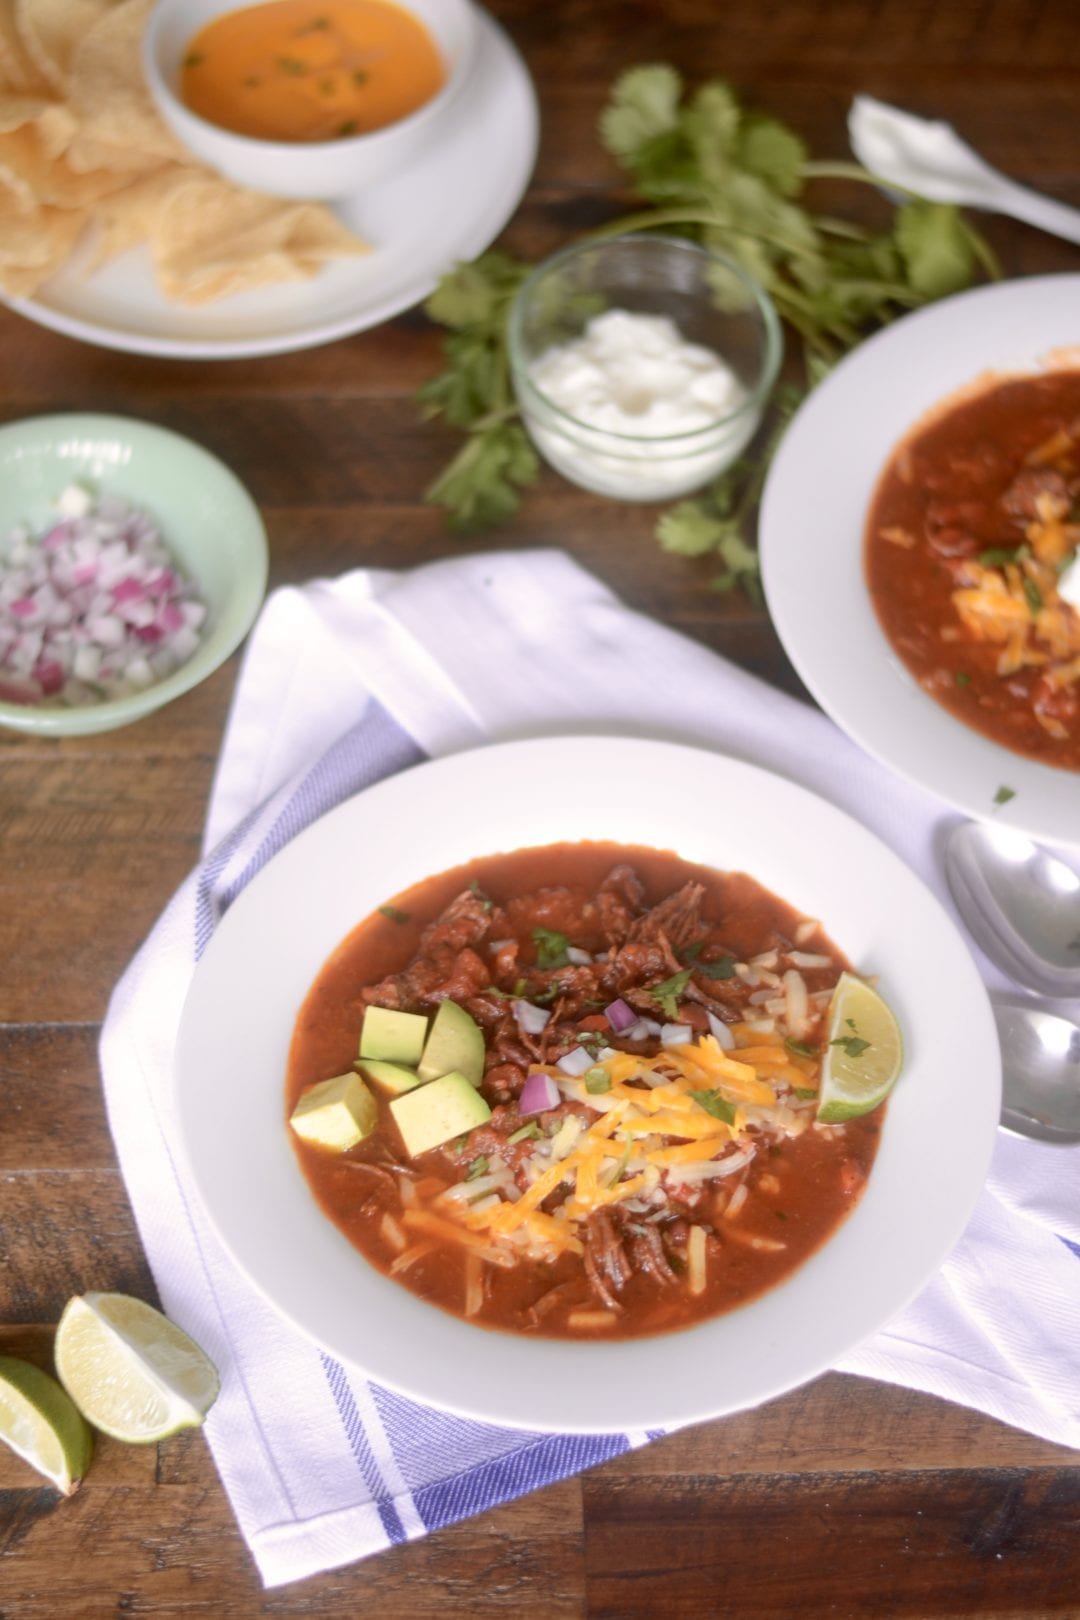 Slow Cooker Carne Asada Chili - The steak lover's chili! - Sarcastic cooking